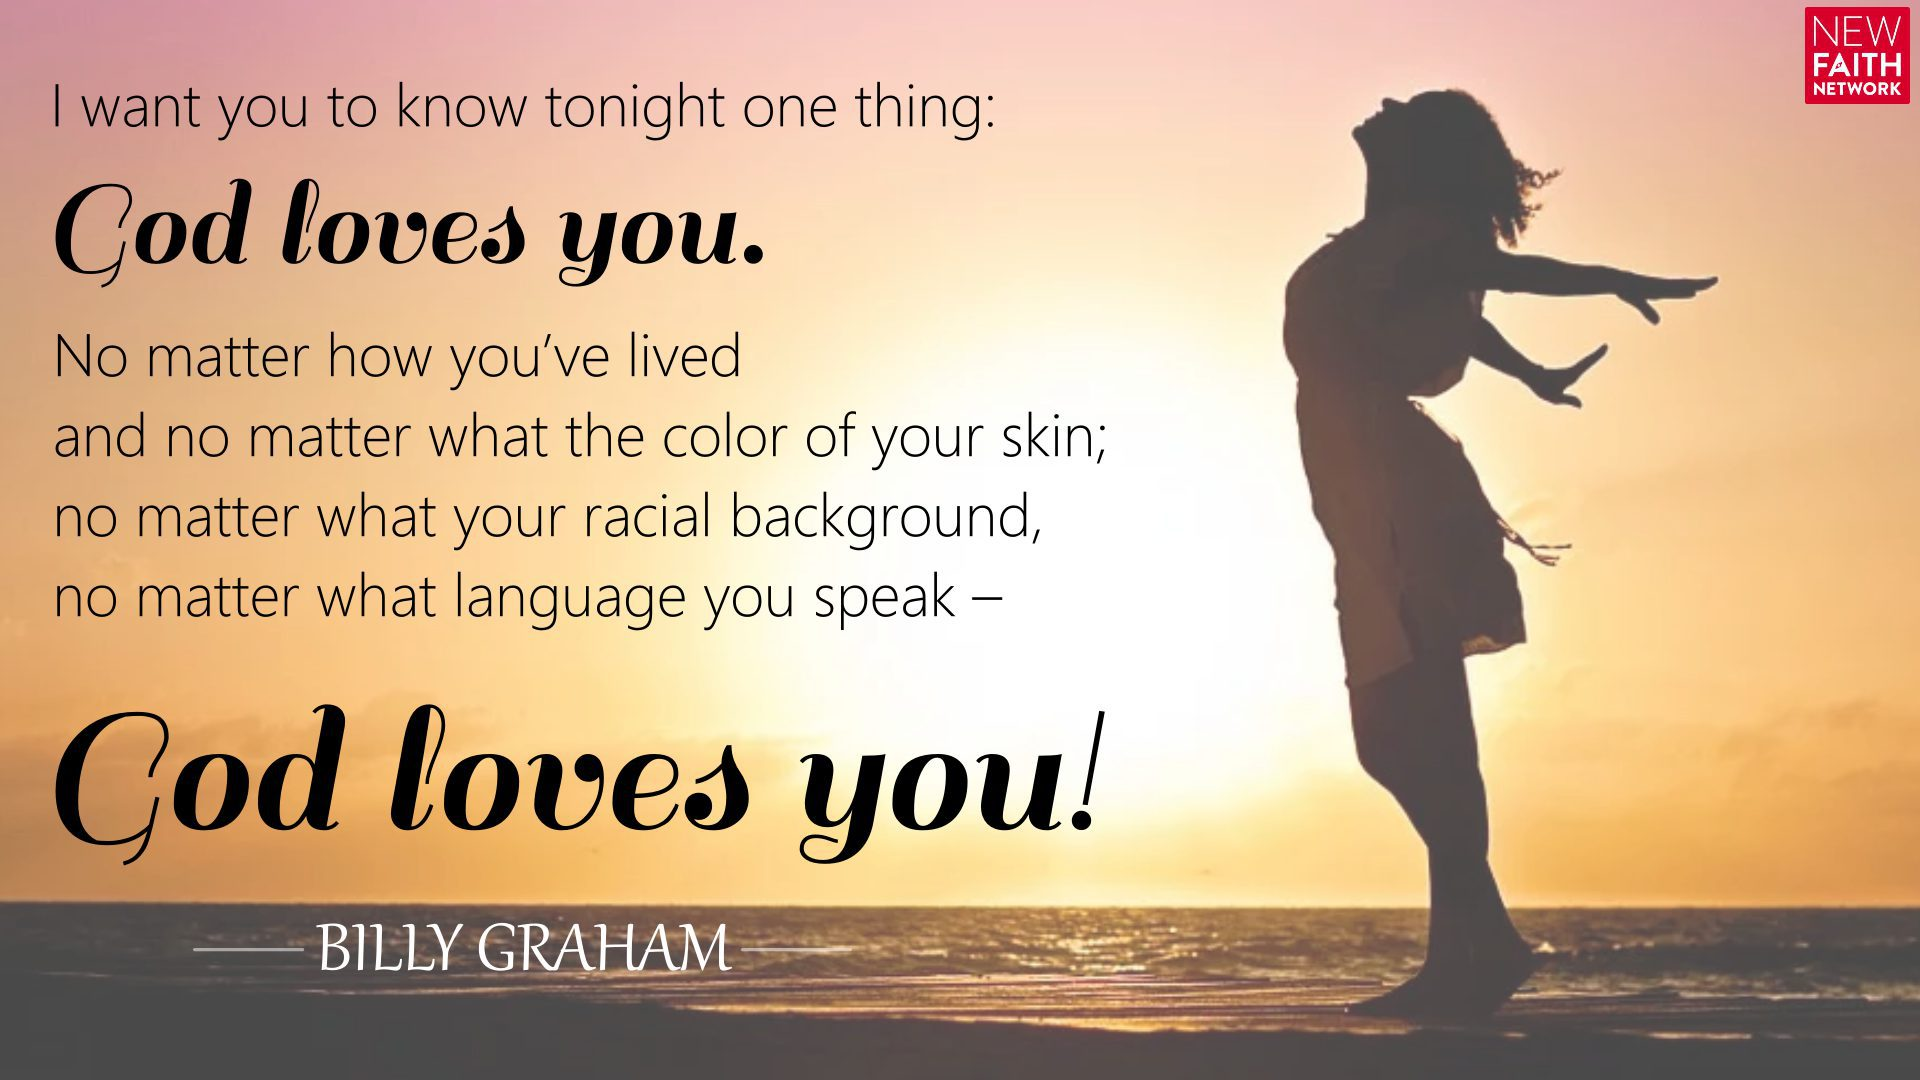 I want you to know tonight one thing: God loves you. No matter how you've lived and no matter what the color of your skin; no matter what your racial background, no matter what language you speak – God loves you!